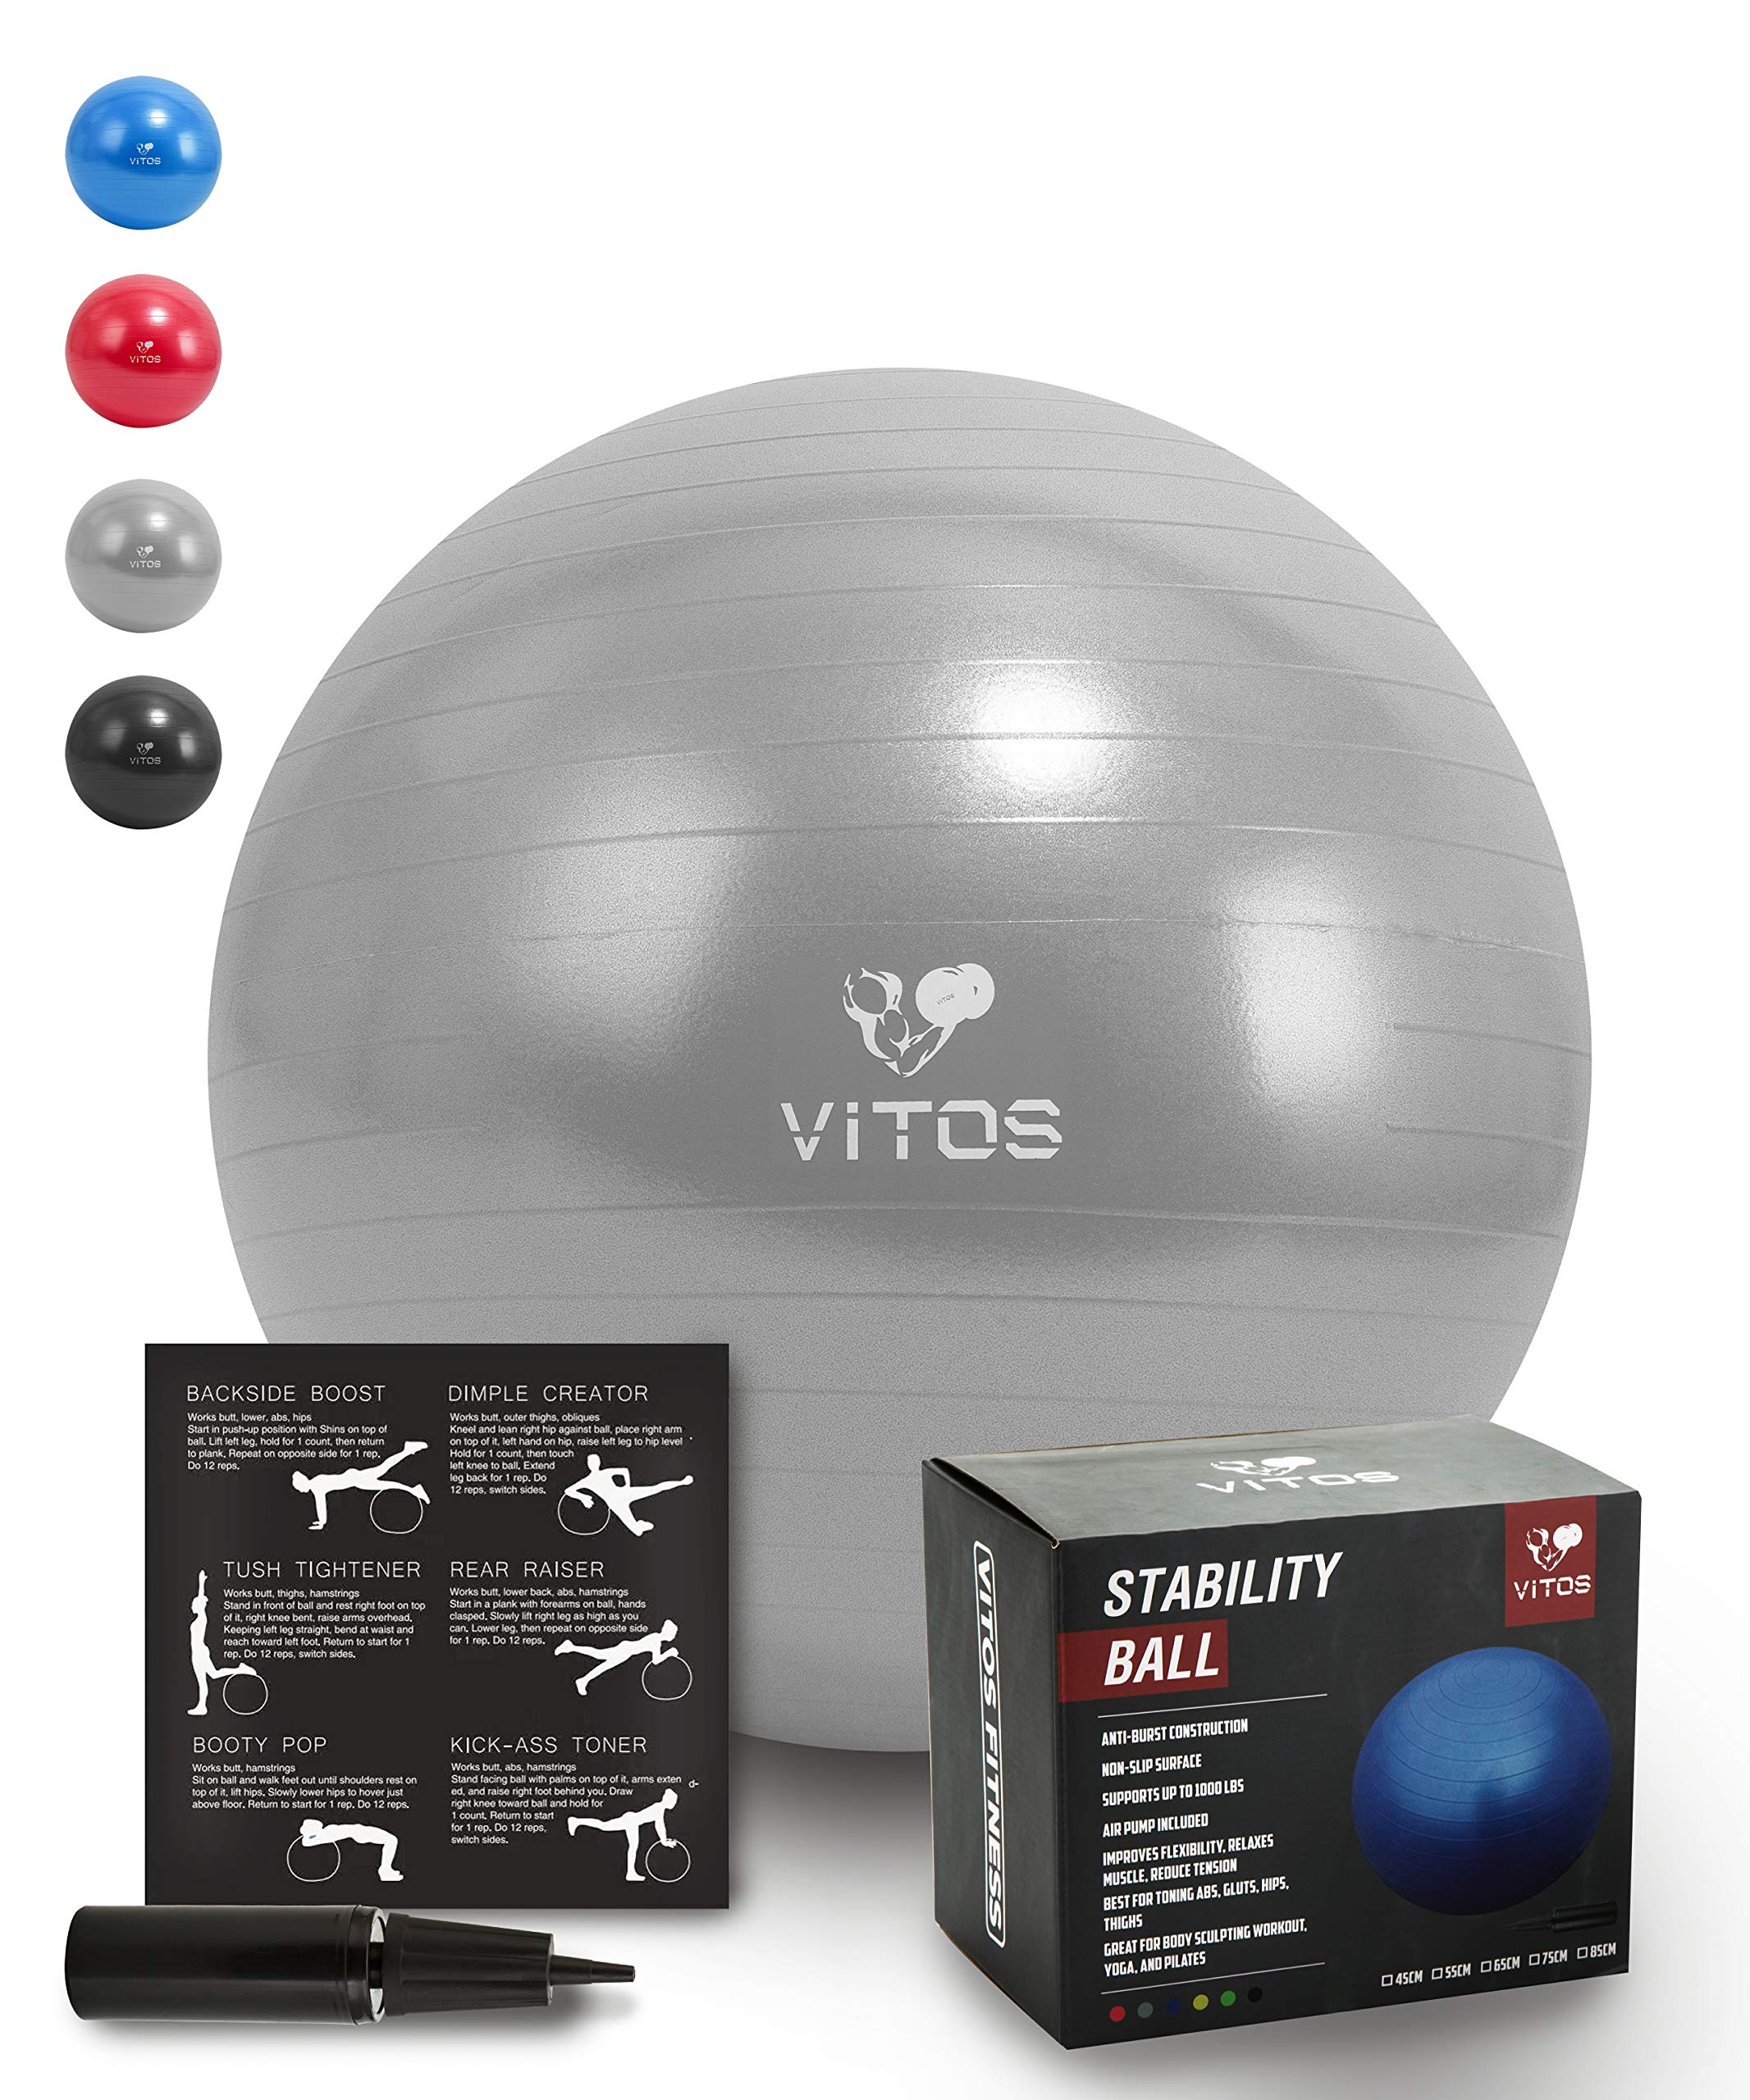 Vitos Fitness Anti Burst Stability Ball Extra Thick Non Slip Supports 2200LB for Fitness Exercise Birth Balance Yoga Workout Guide Quick Pump Included Professional Quality Design (Silver, 75 cm) by Vitos Fitness